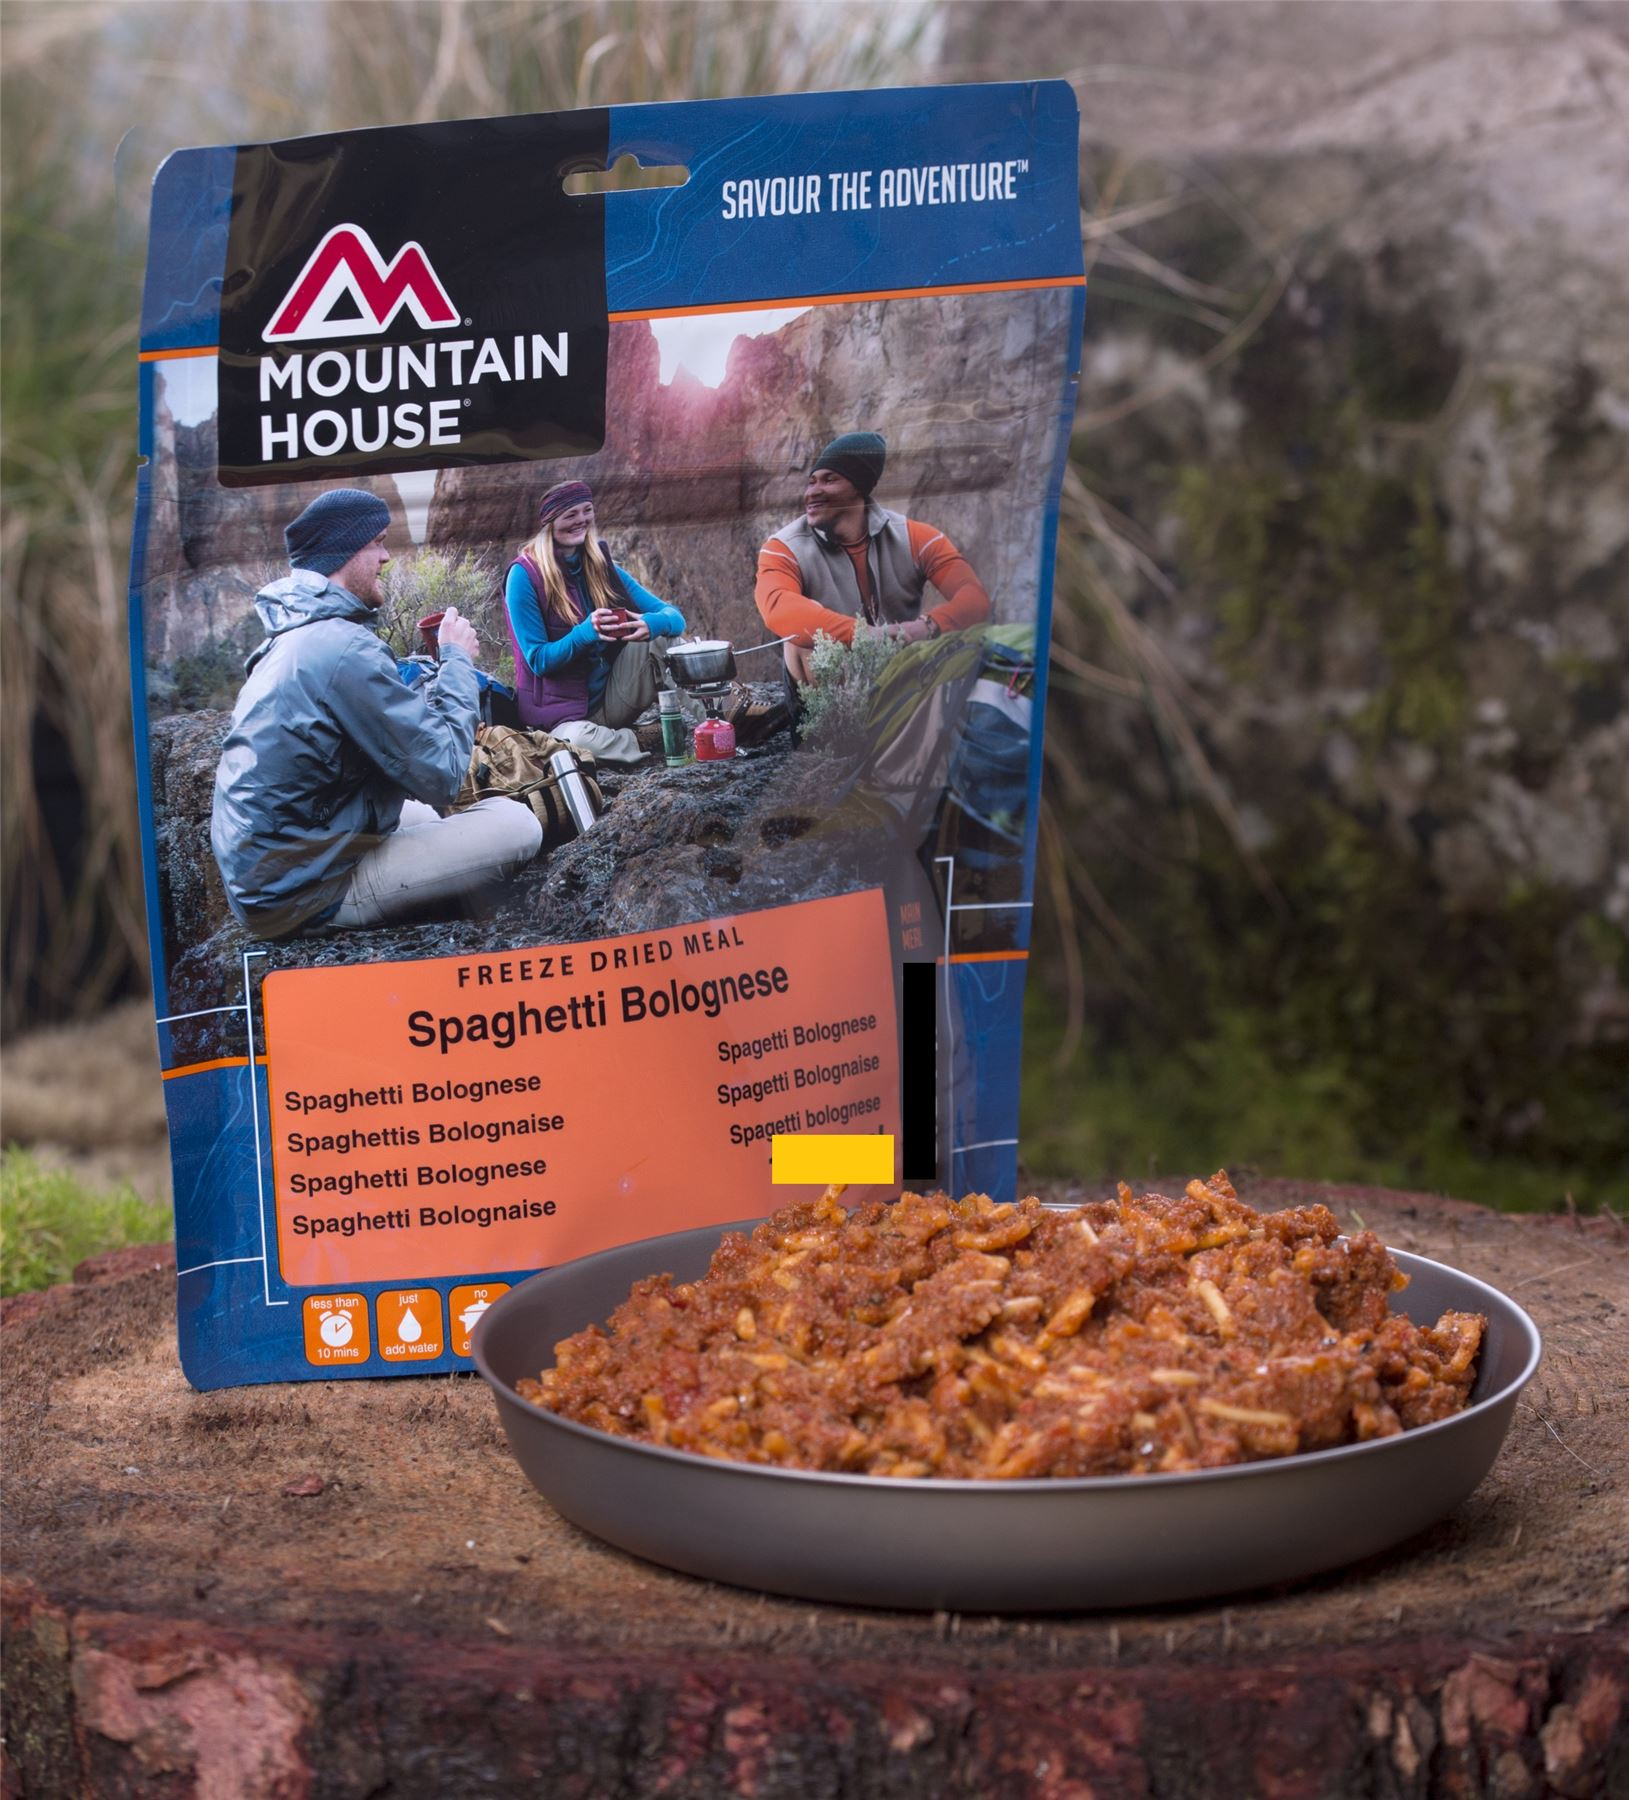 Mountain House European Freeze Dry Range Camping Hiking